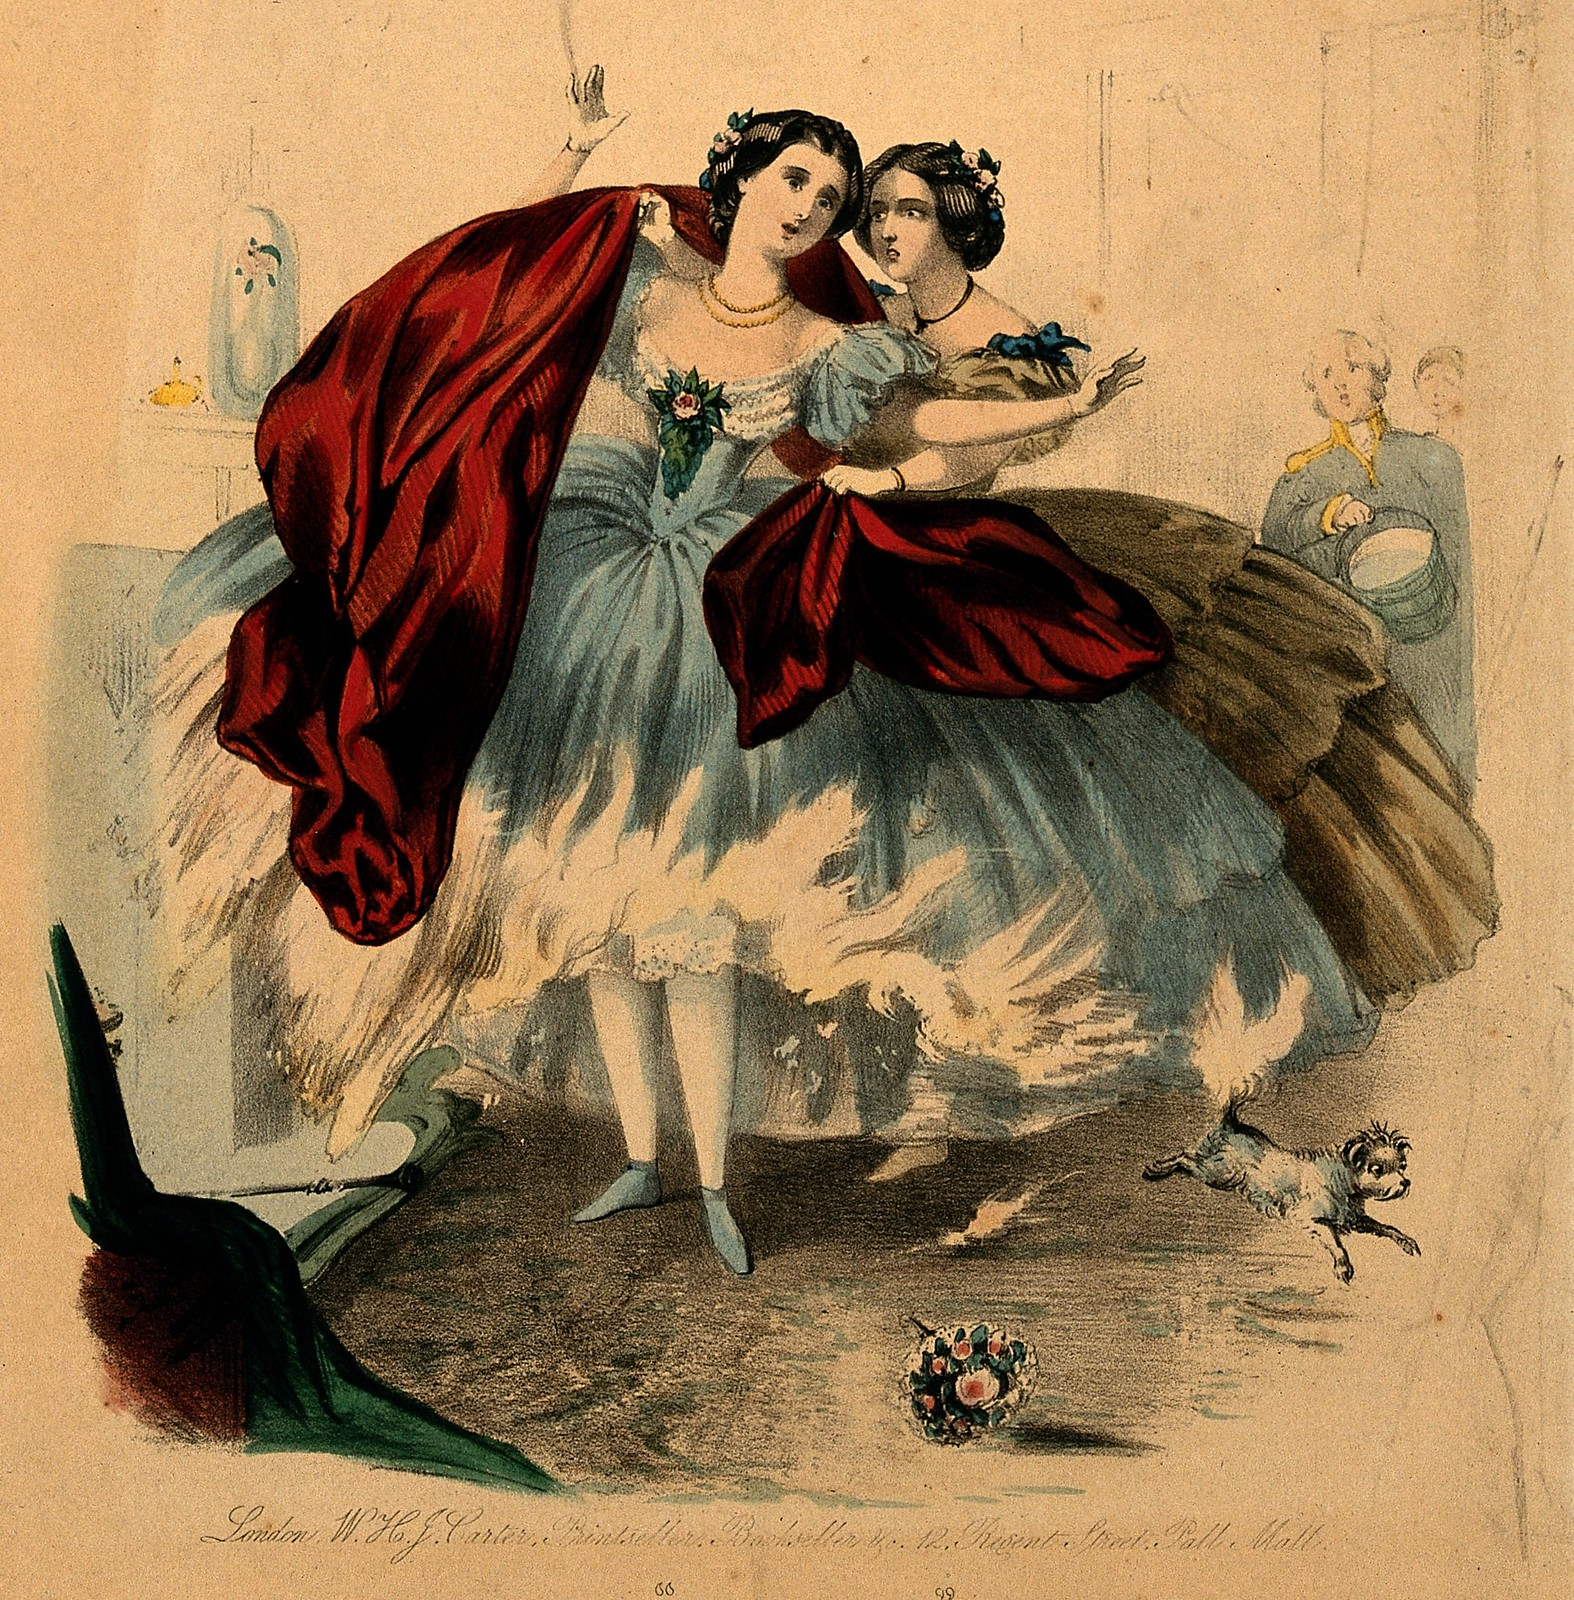 c. 1860. Women wearing crinolines which are set on fire by flames from a domestic fireplace.